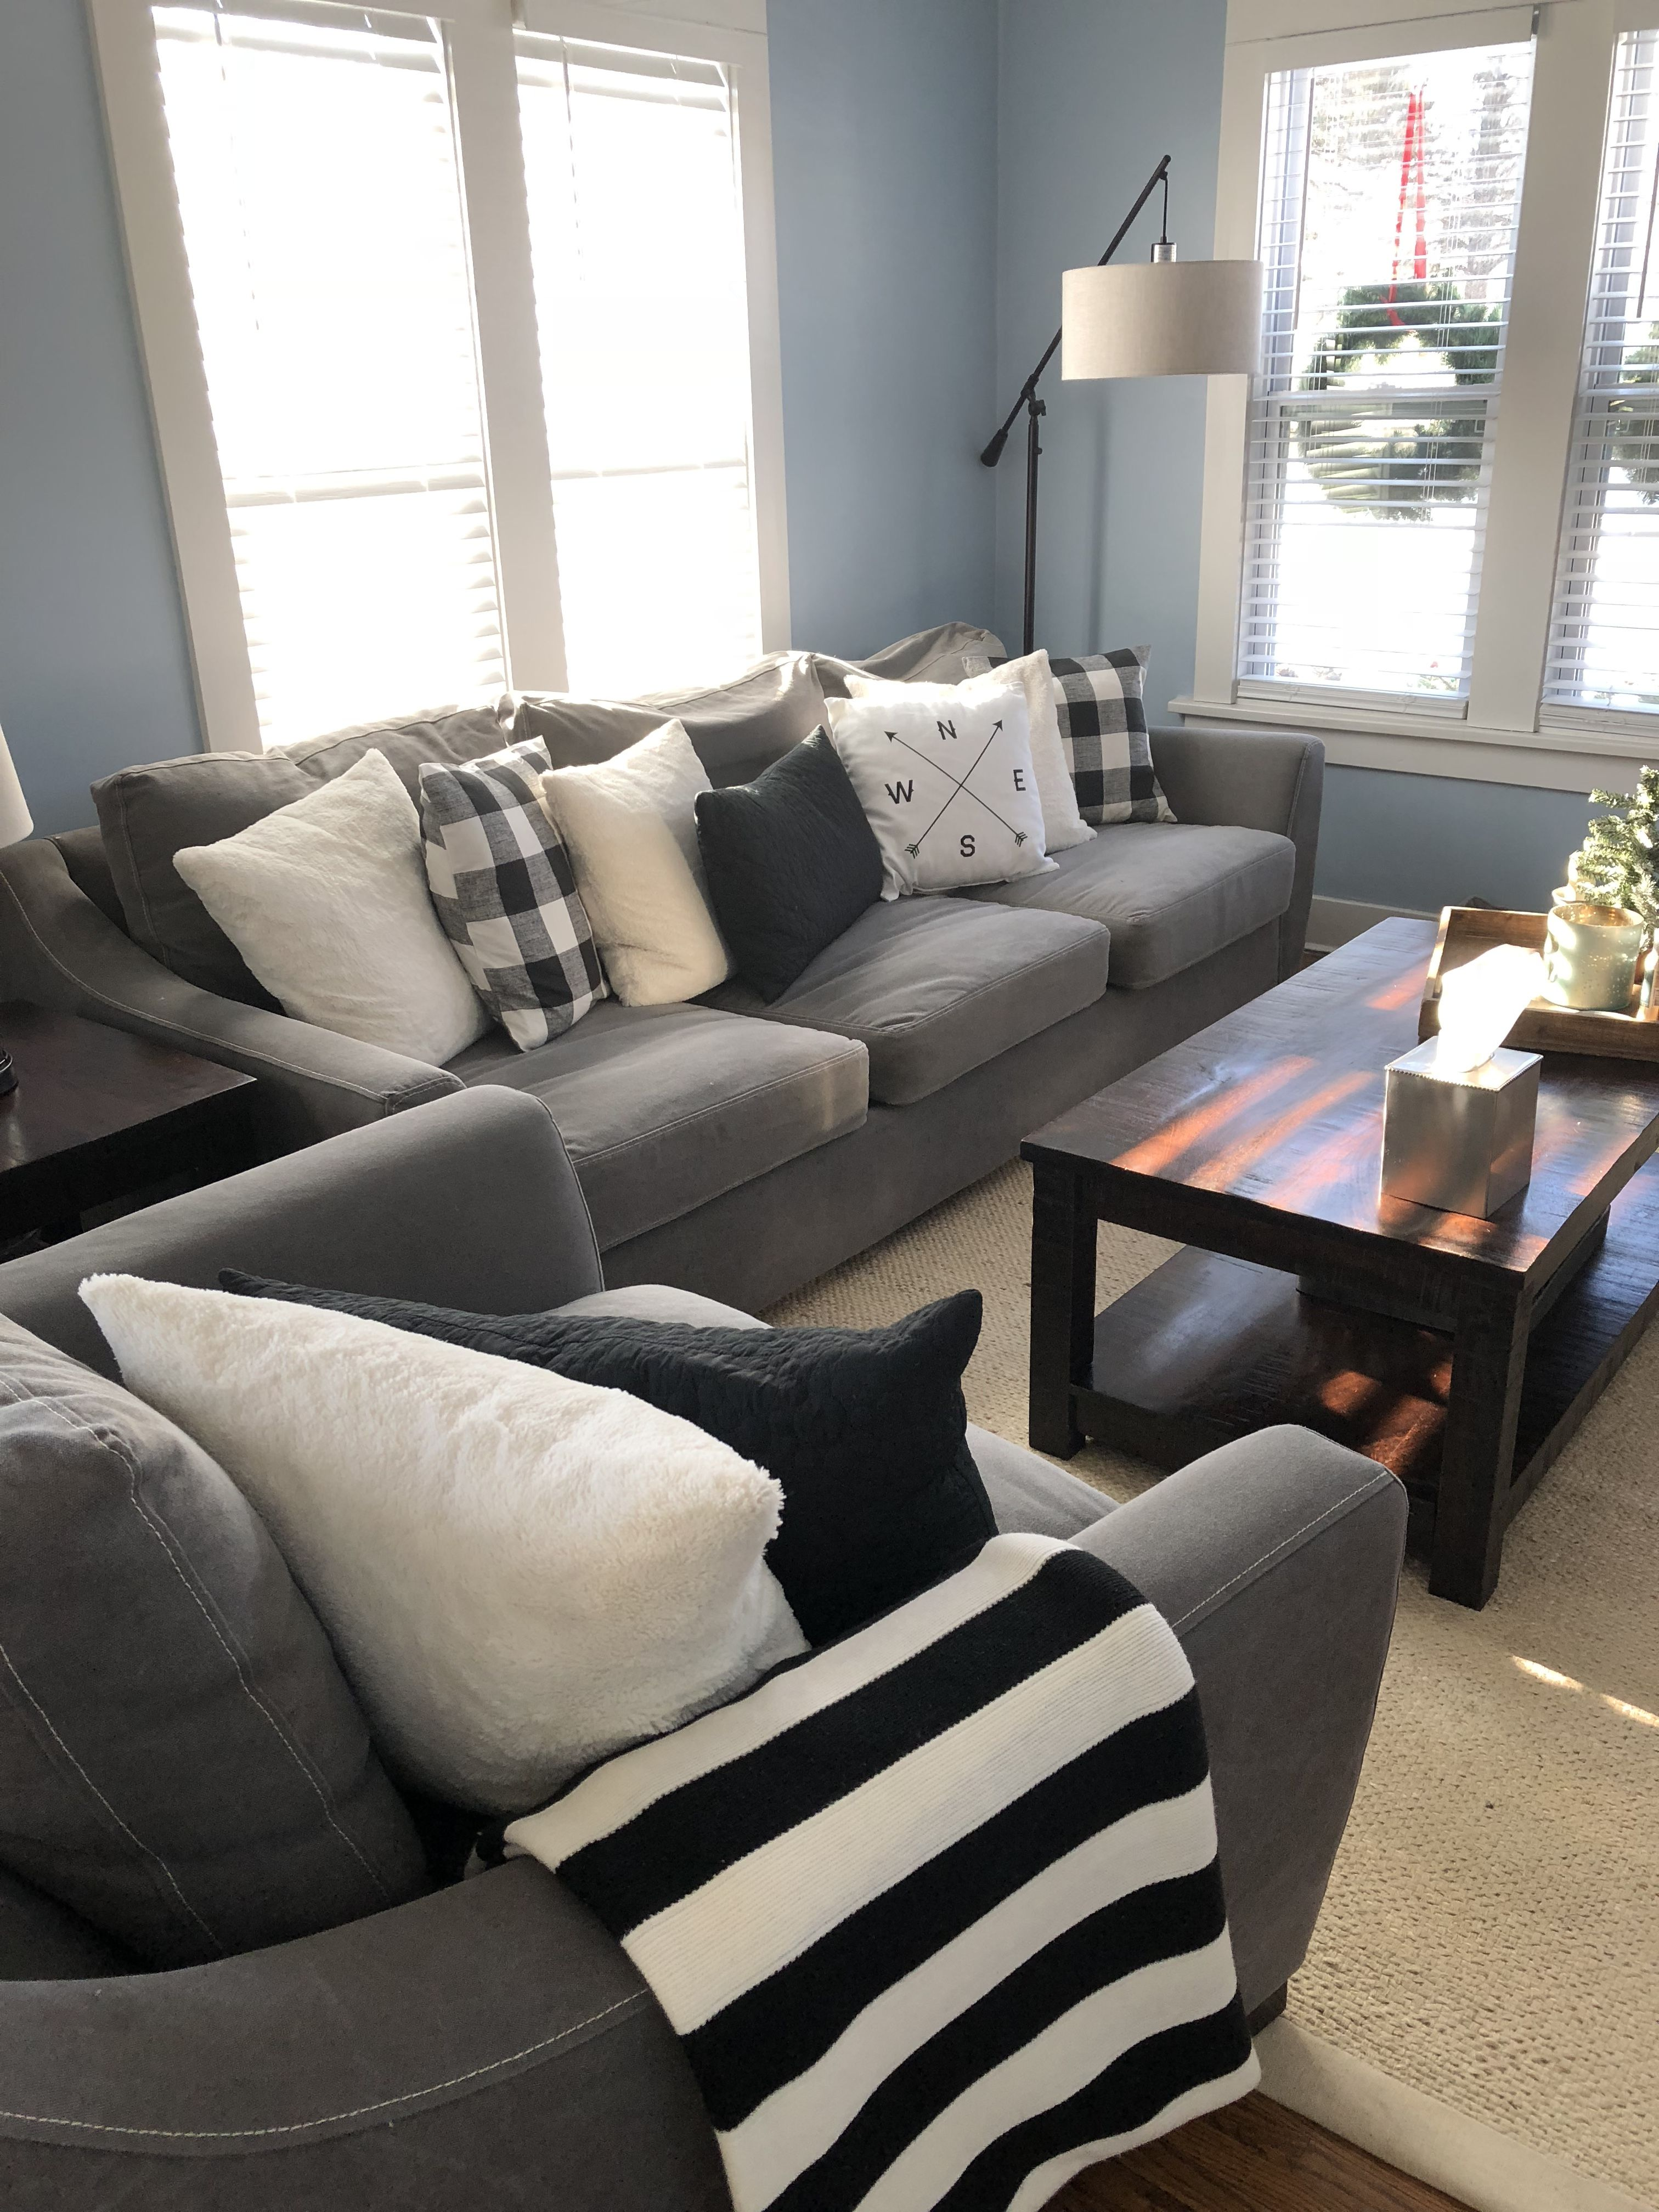 Modern Farmhouse Living Room Sofa Used Neutral Colors That Are Easy On The Eyes Black White Gr Farm House Living Room Couches Living Room Black Living Room